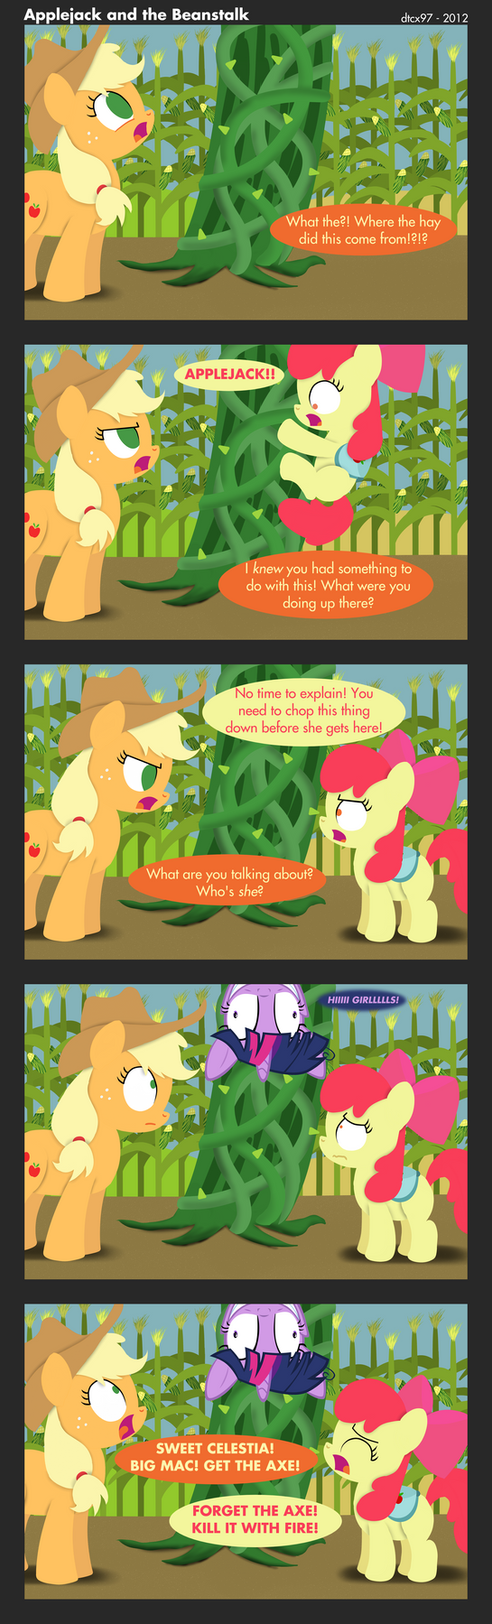 Applejack and the Beanstalk by postcrusade